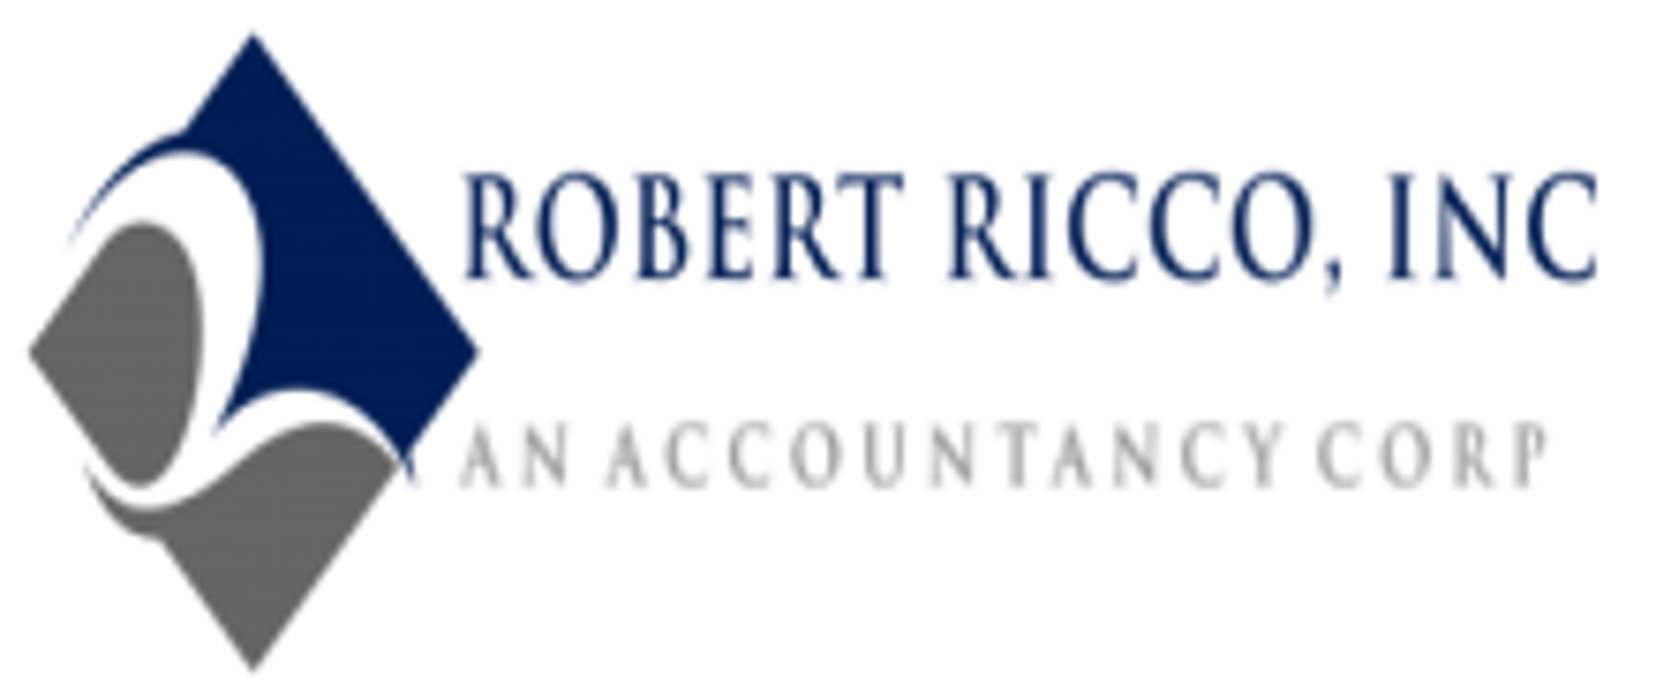 Robert Ricco, Inc, An Accountancy Corp - Los Angeles, CA